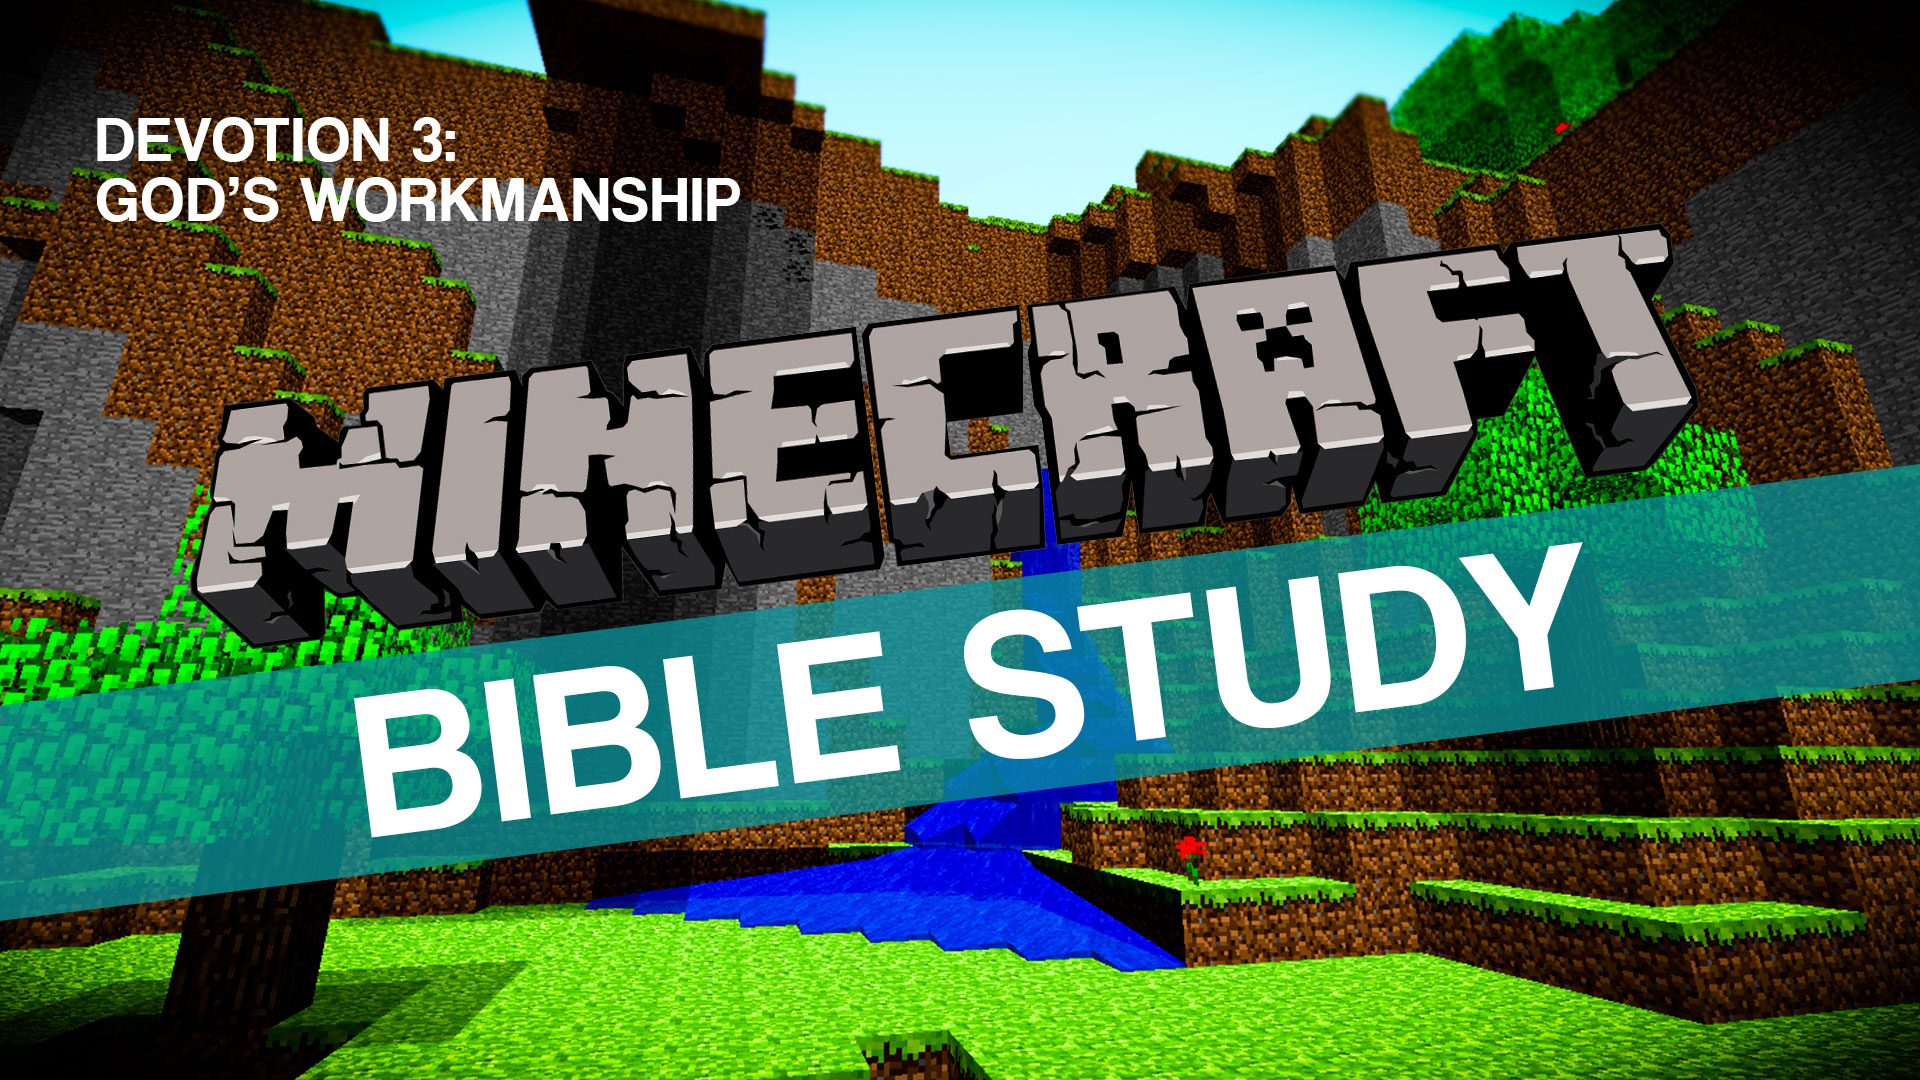 Minecraft Bible Study: Workmanship of God